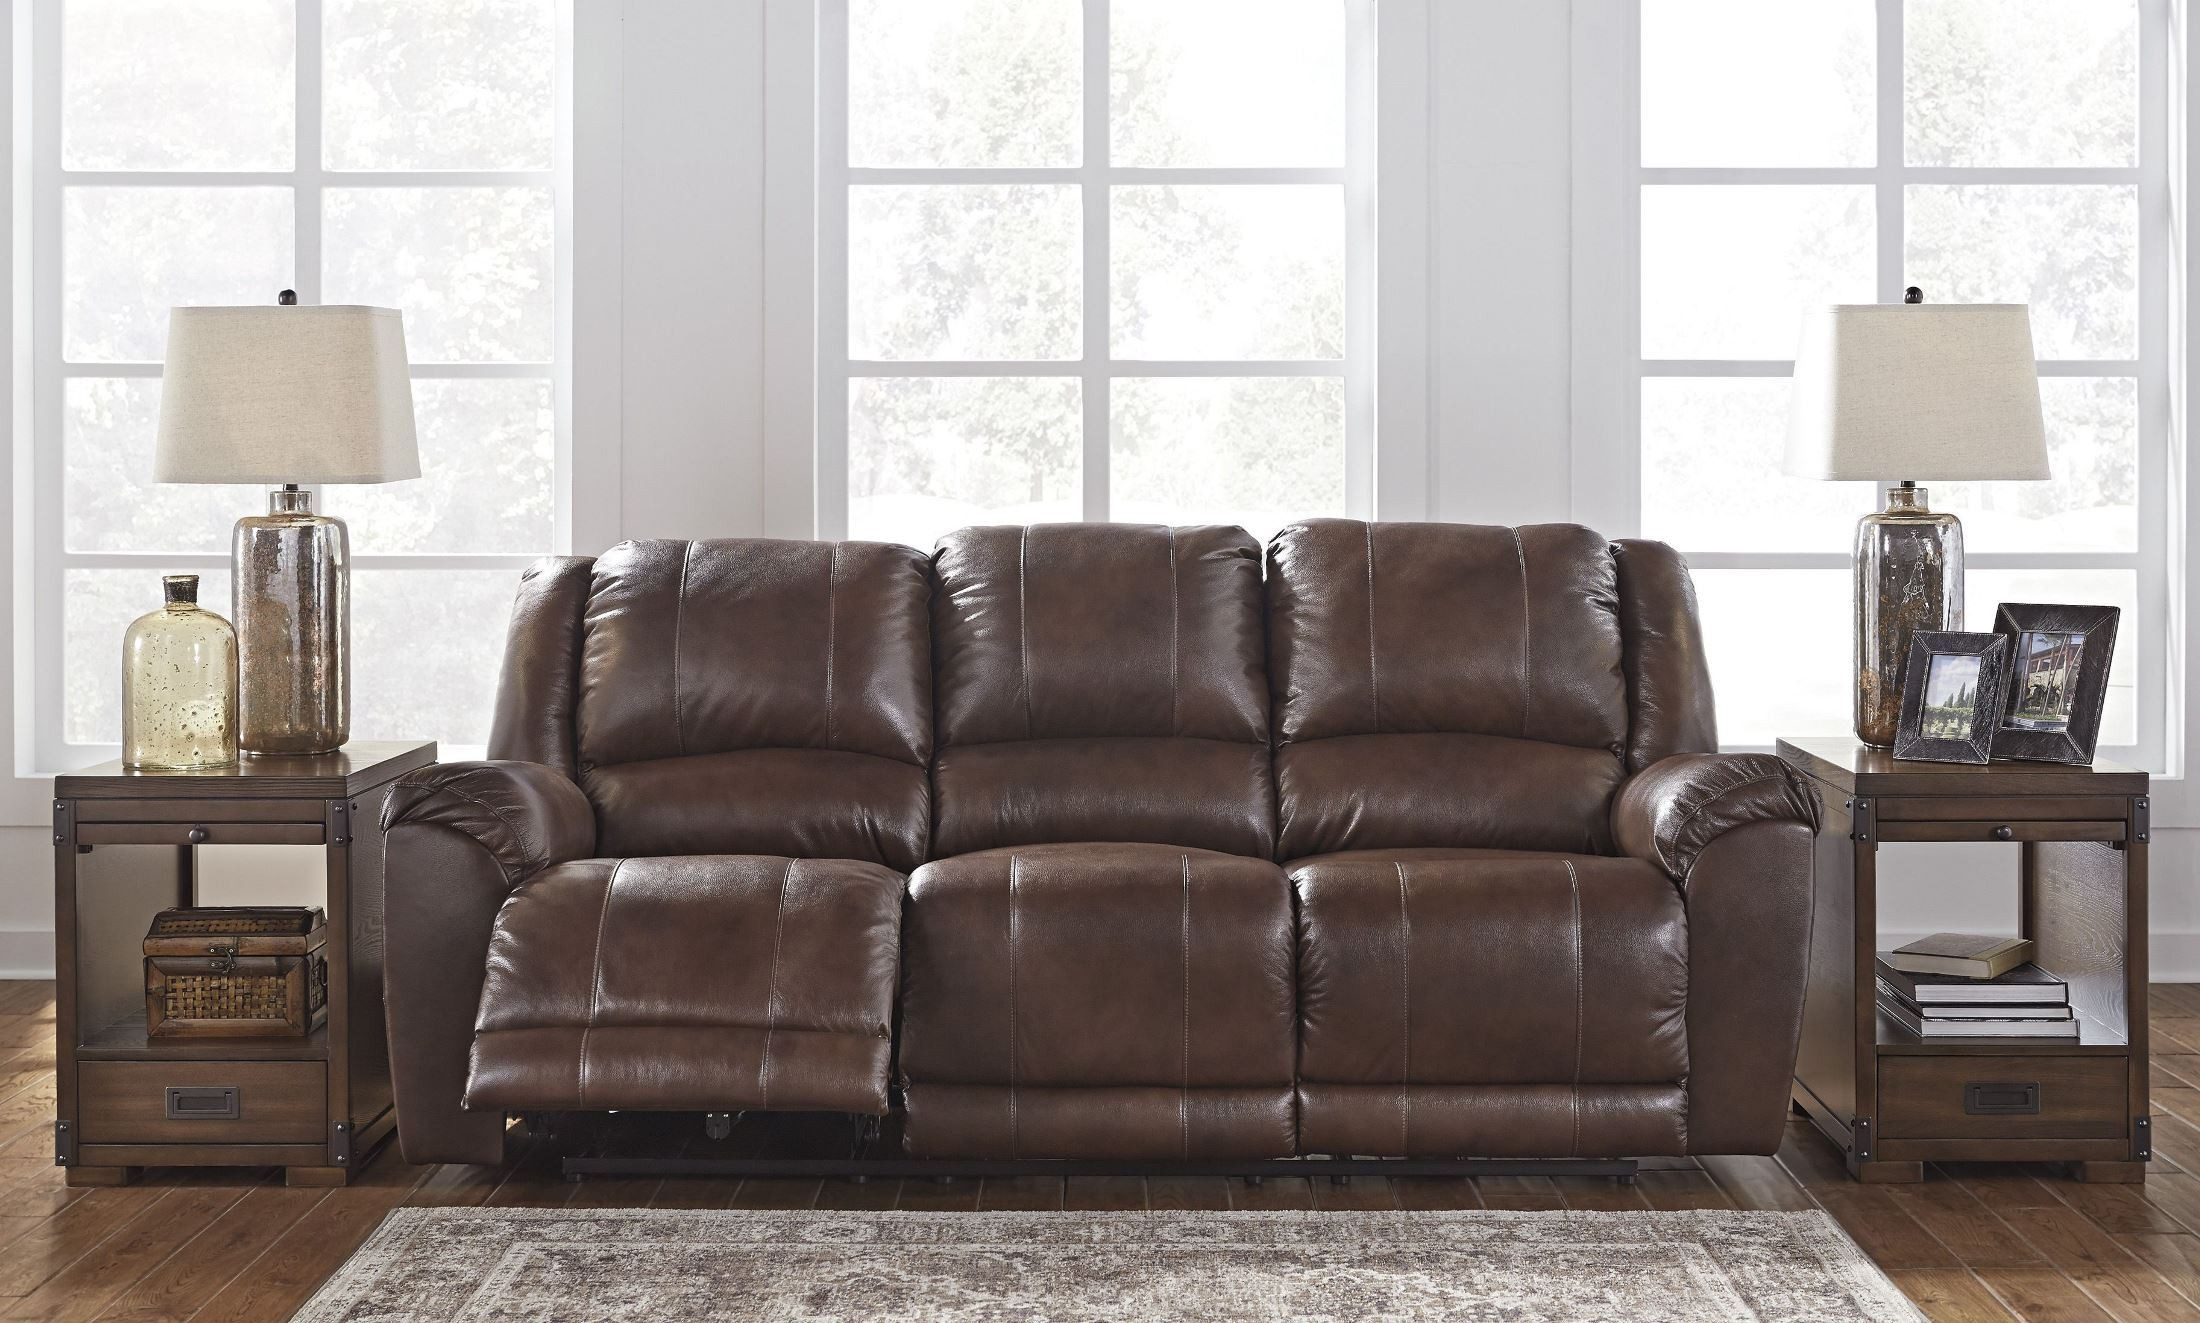 Persiphone Canyon Reclining Sofa From Ashley Coleman